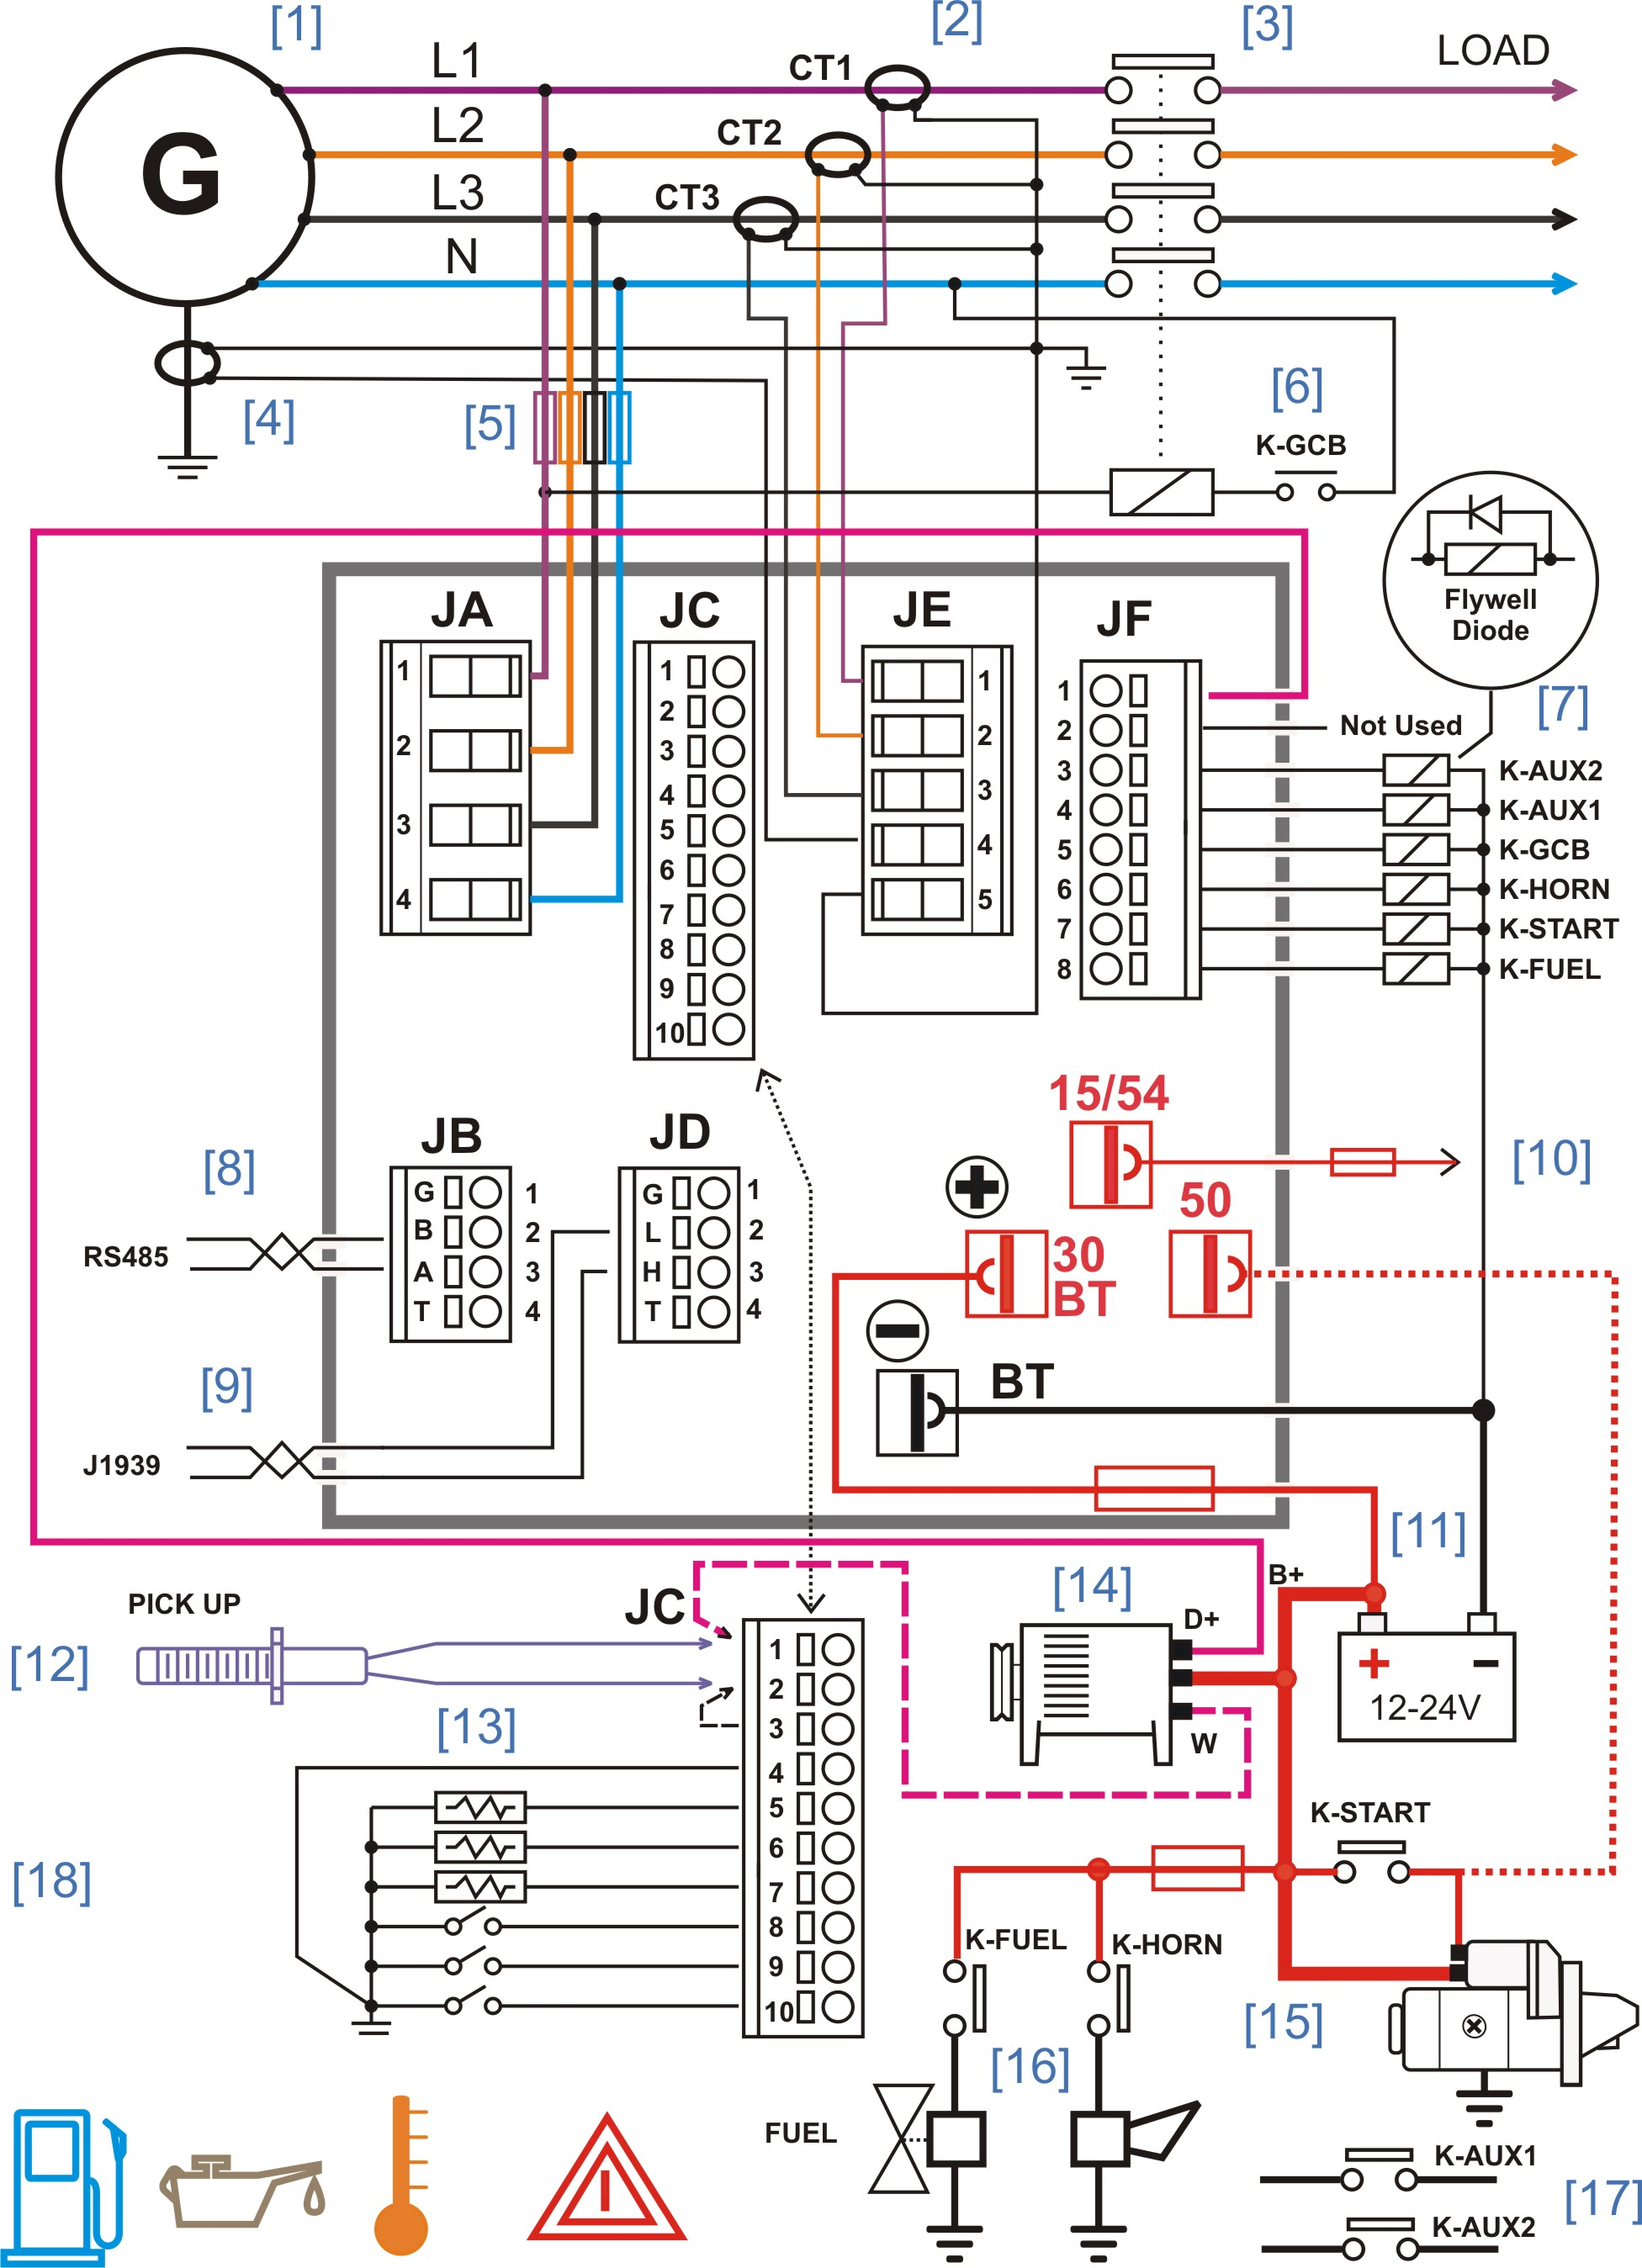 Toyota Tundra Wiring Diagrams Free Printable Schematic Wiring